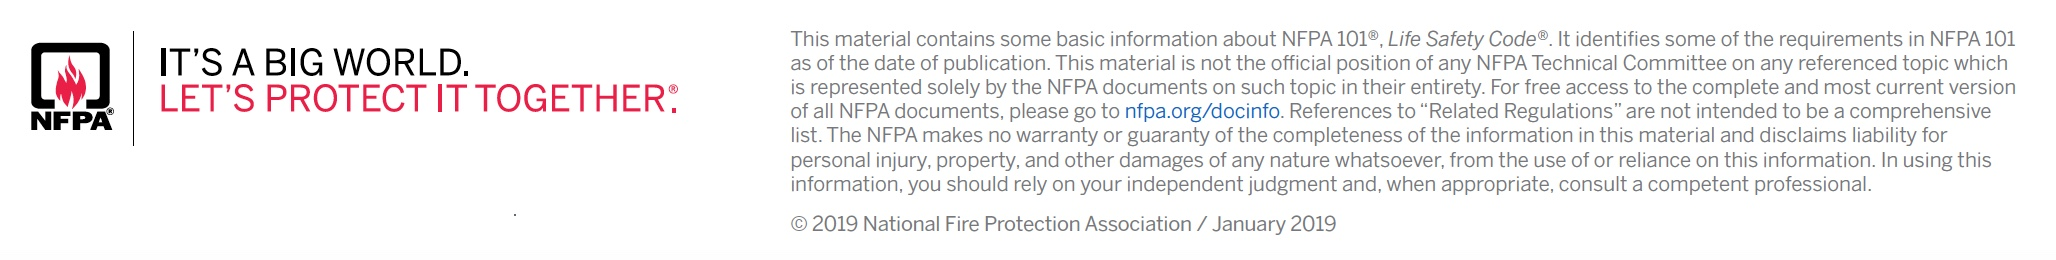 NFPA Logo and text